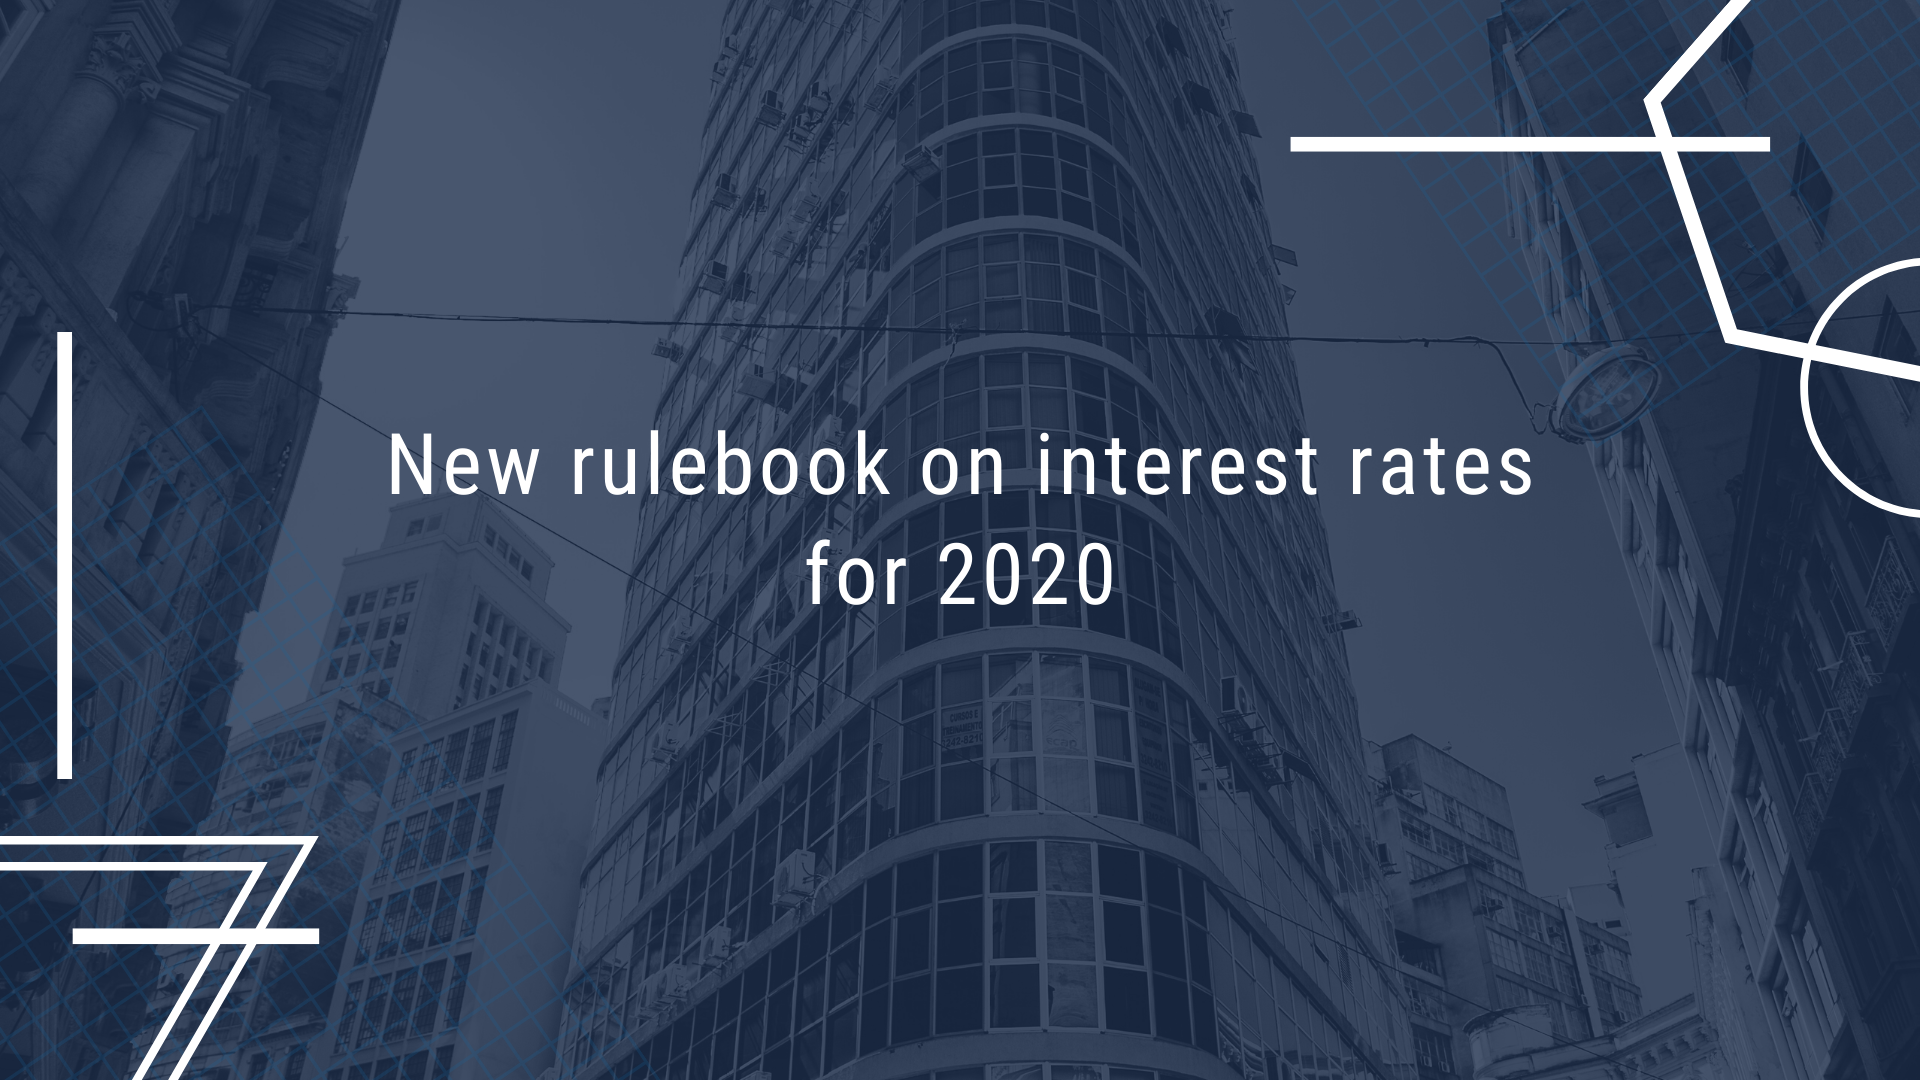 New rulebook on interest rates for 2020